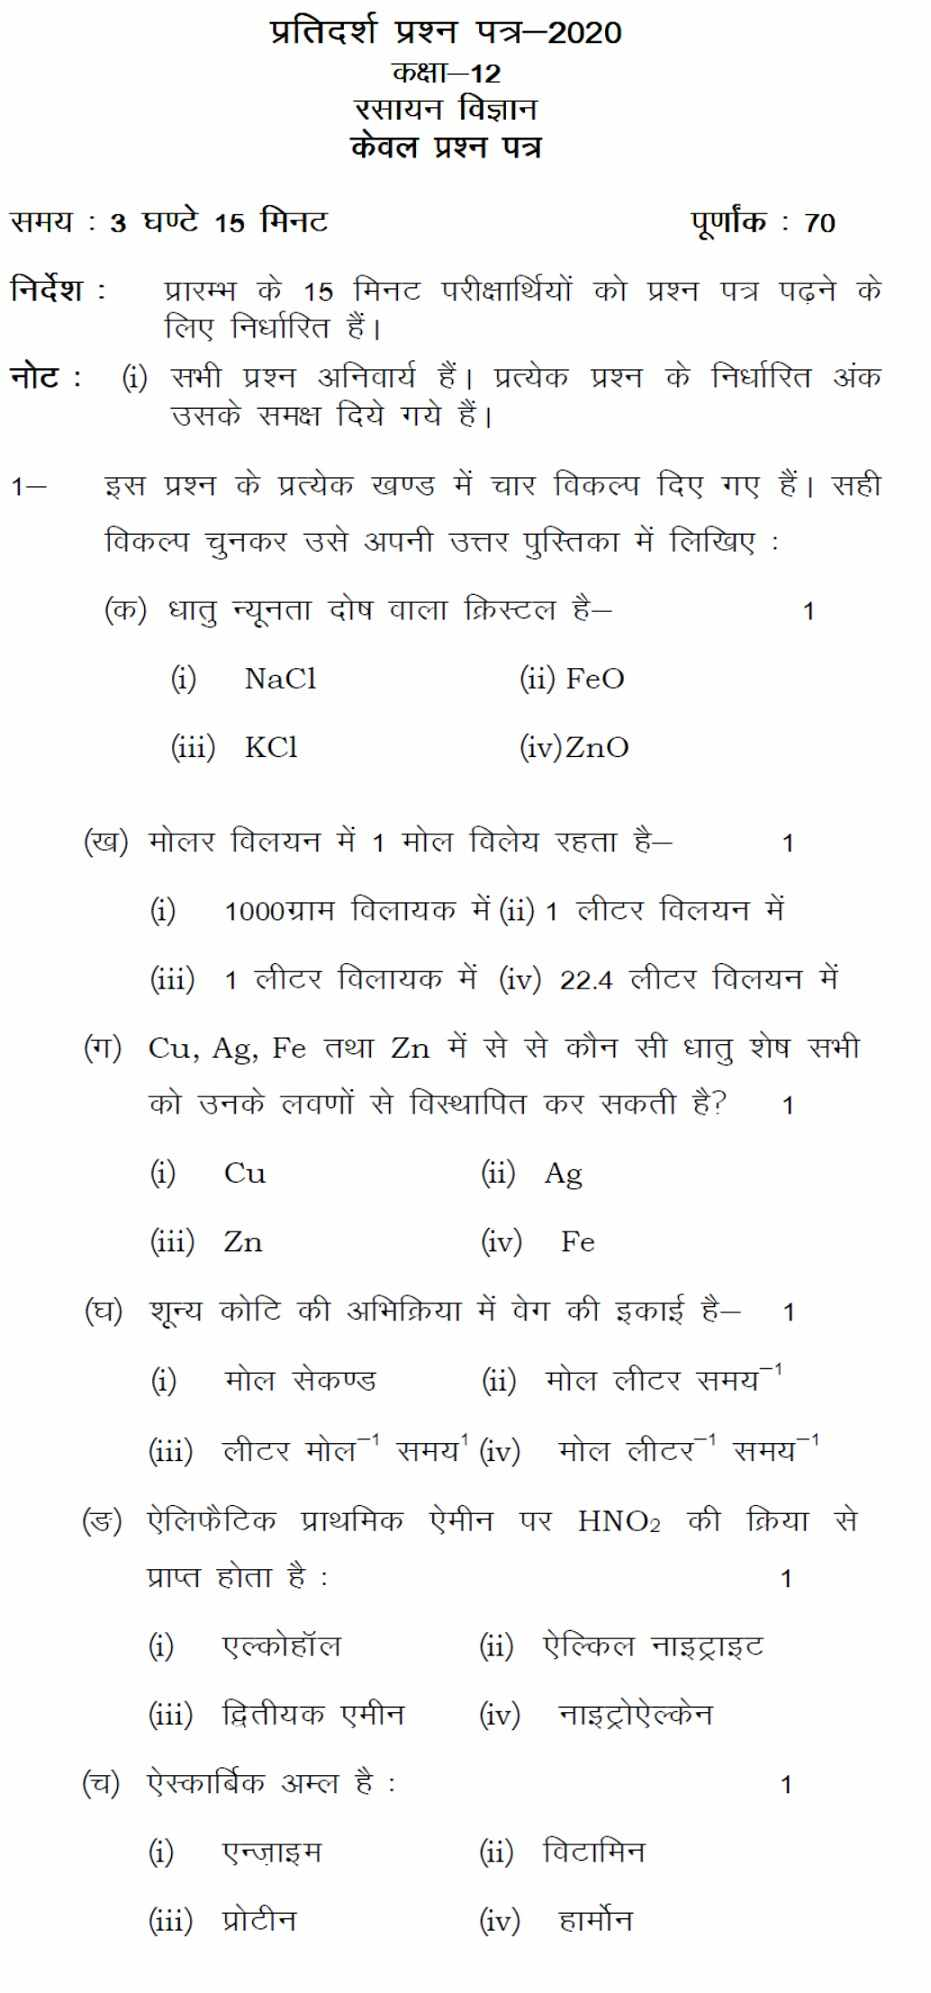 Snapshot from UP Board 12th Chemistry Model Paper 2020